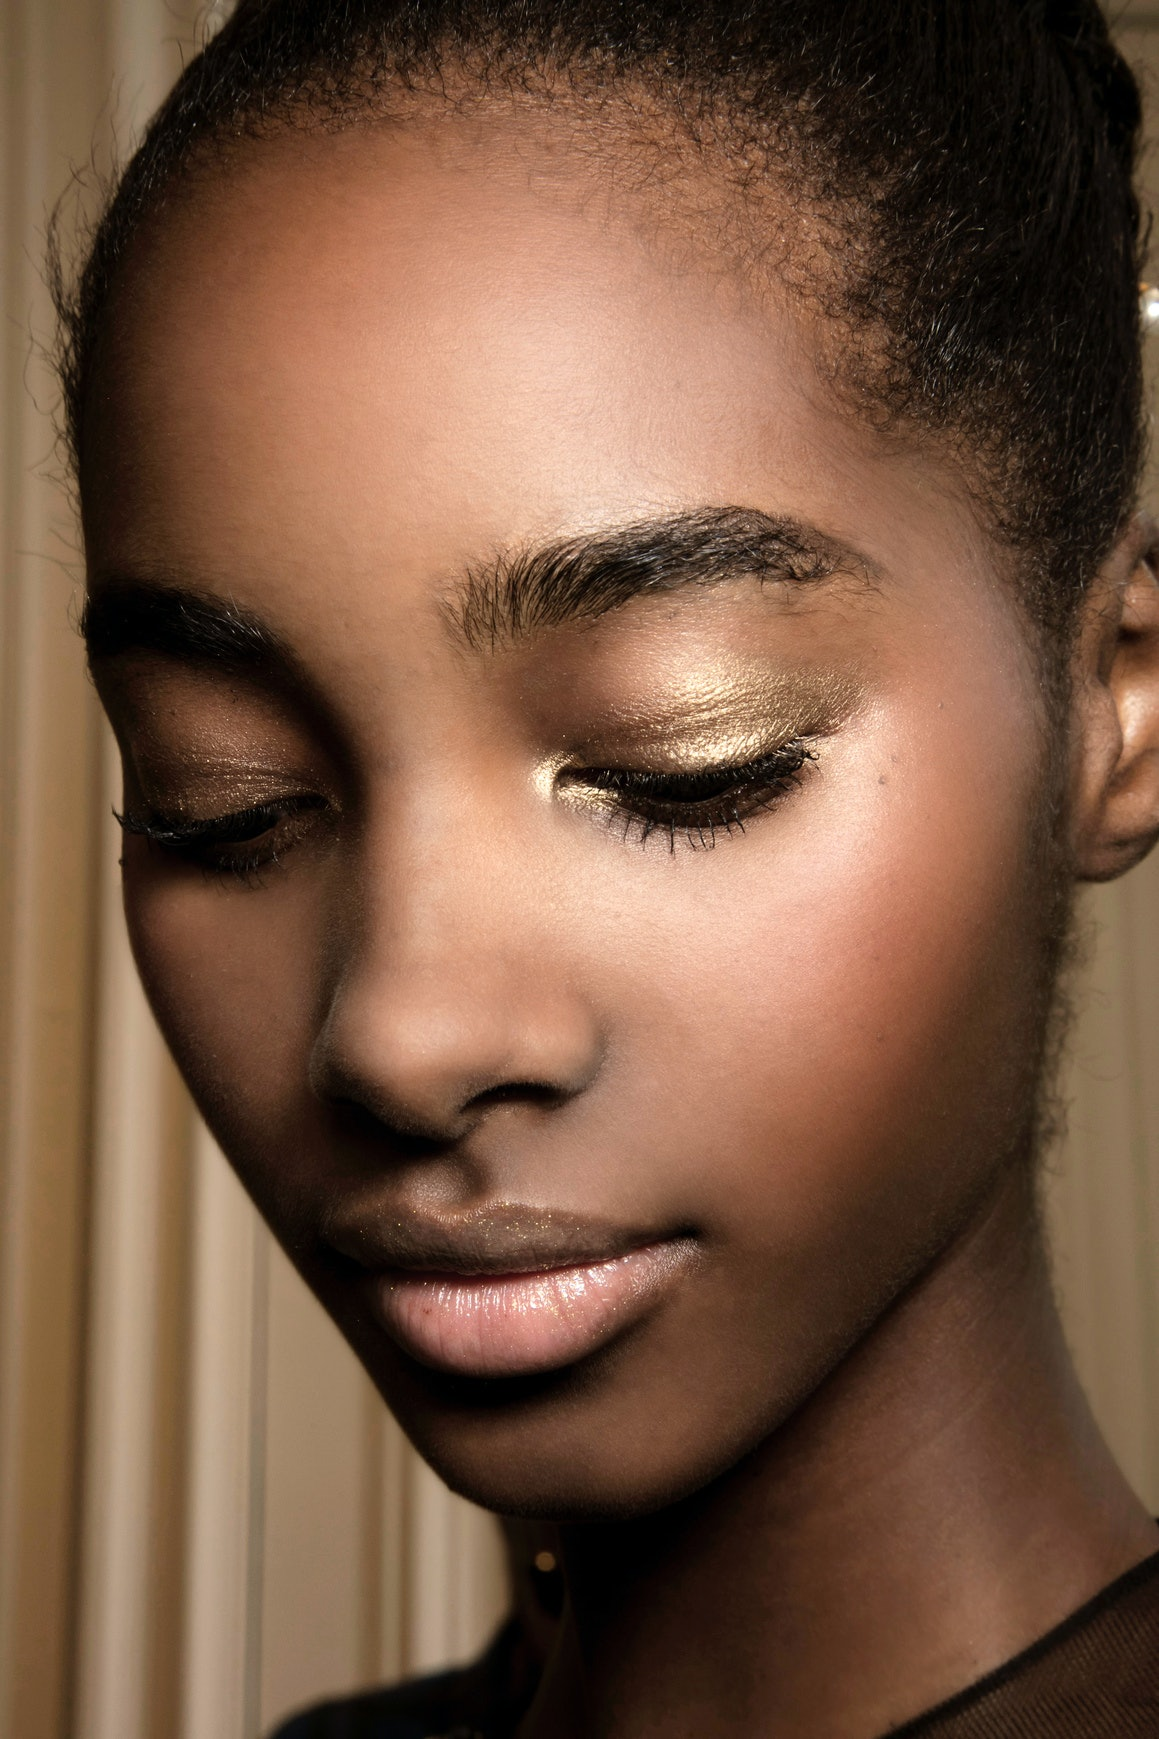 Does Brow Regrowth Serum Really Work The Pros Explain